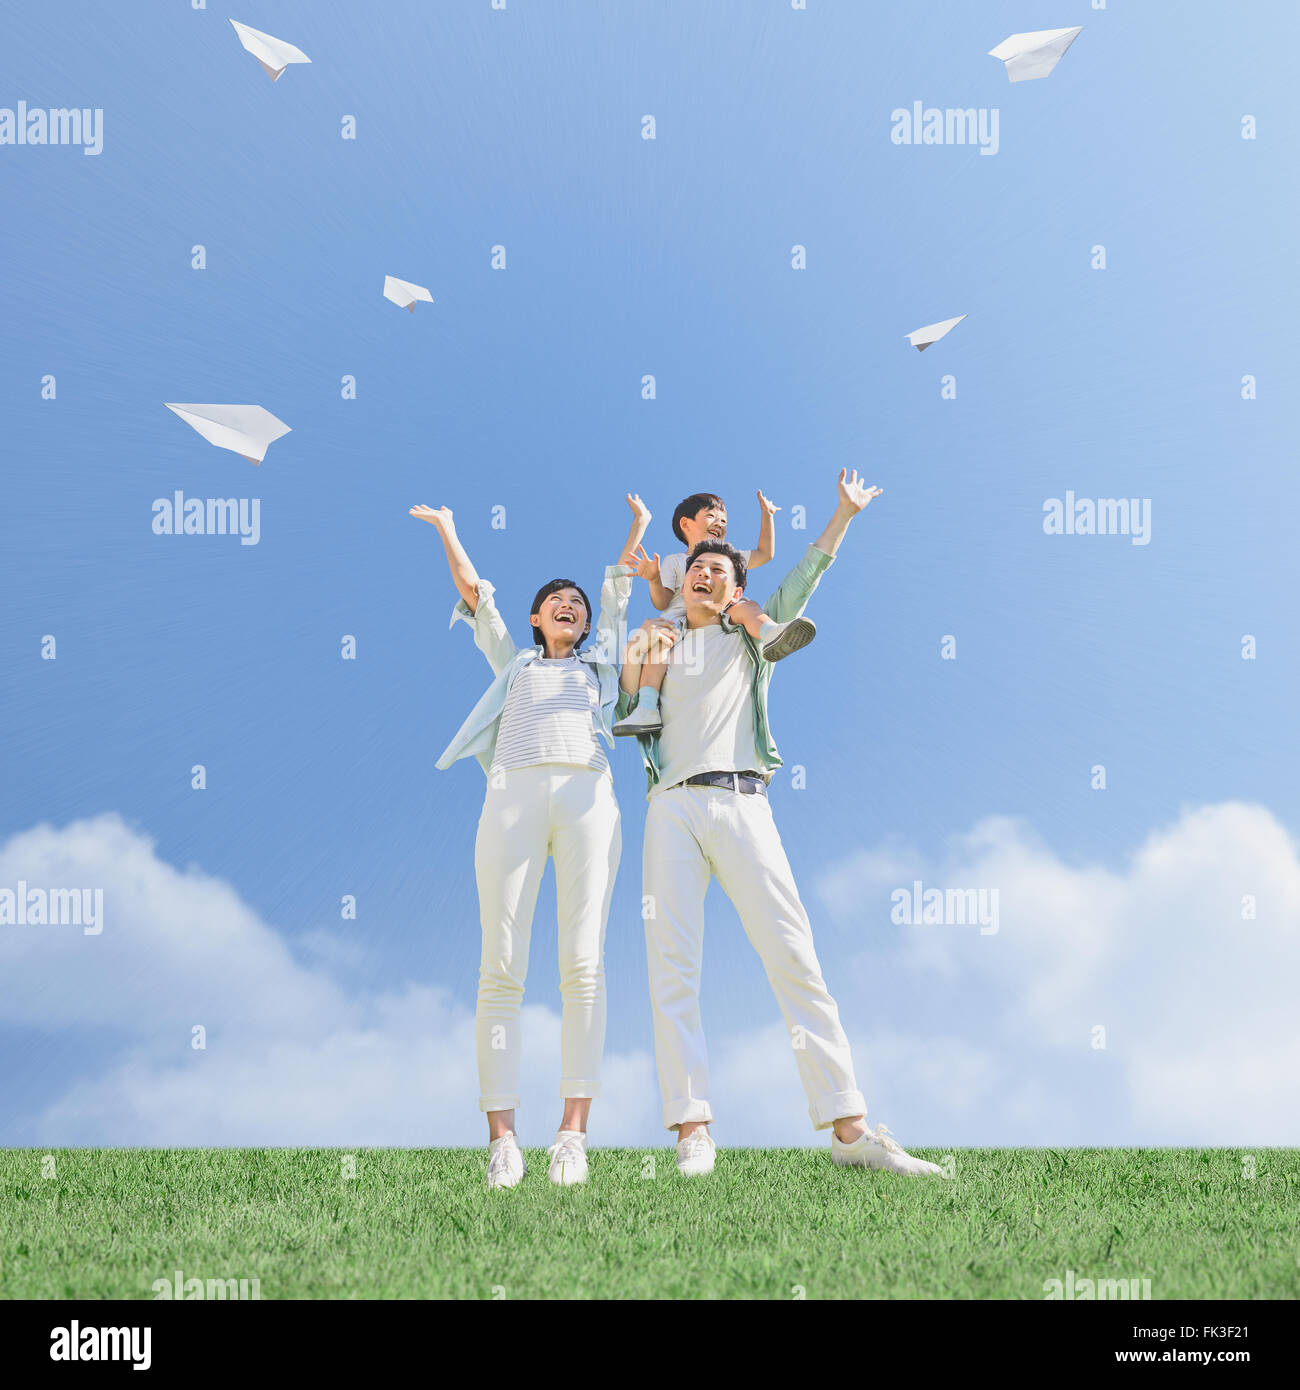 Japanese family flying paper planes in a city park Stock Photo